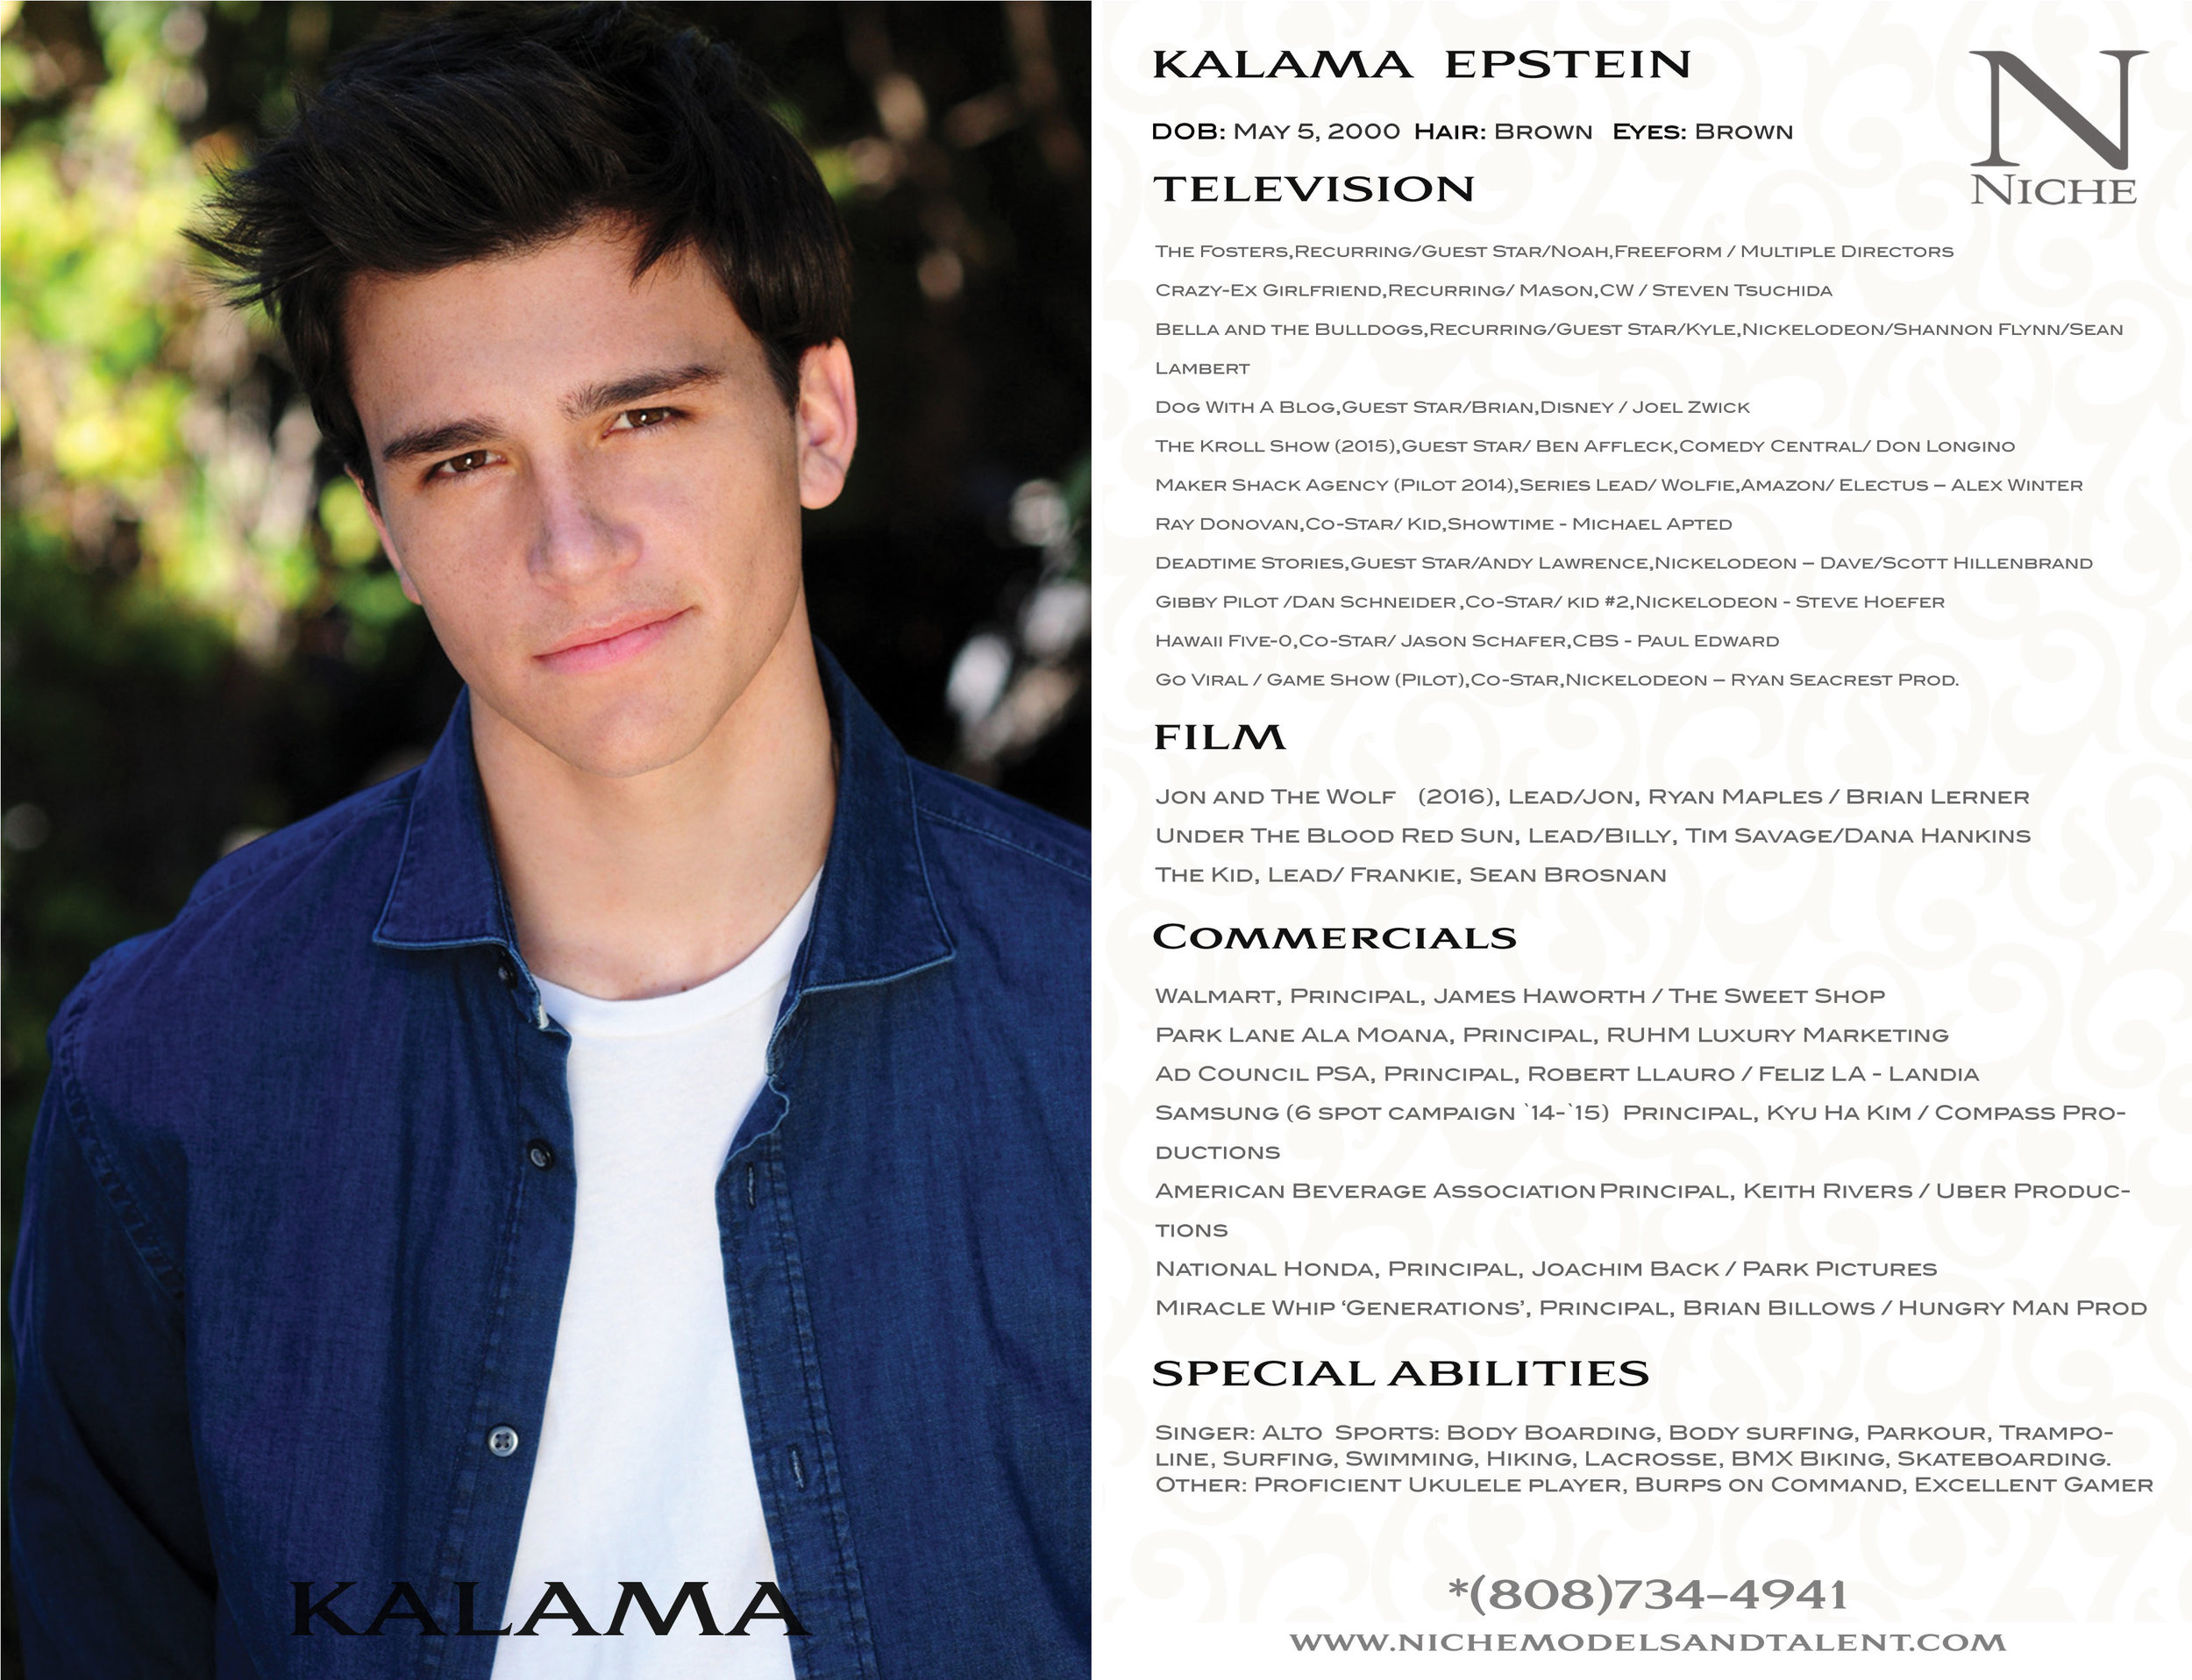 Kalama--Resume-Digital-Card.jpg